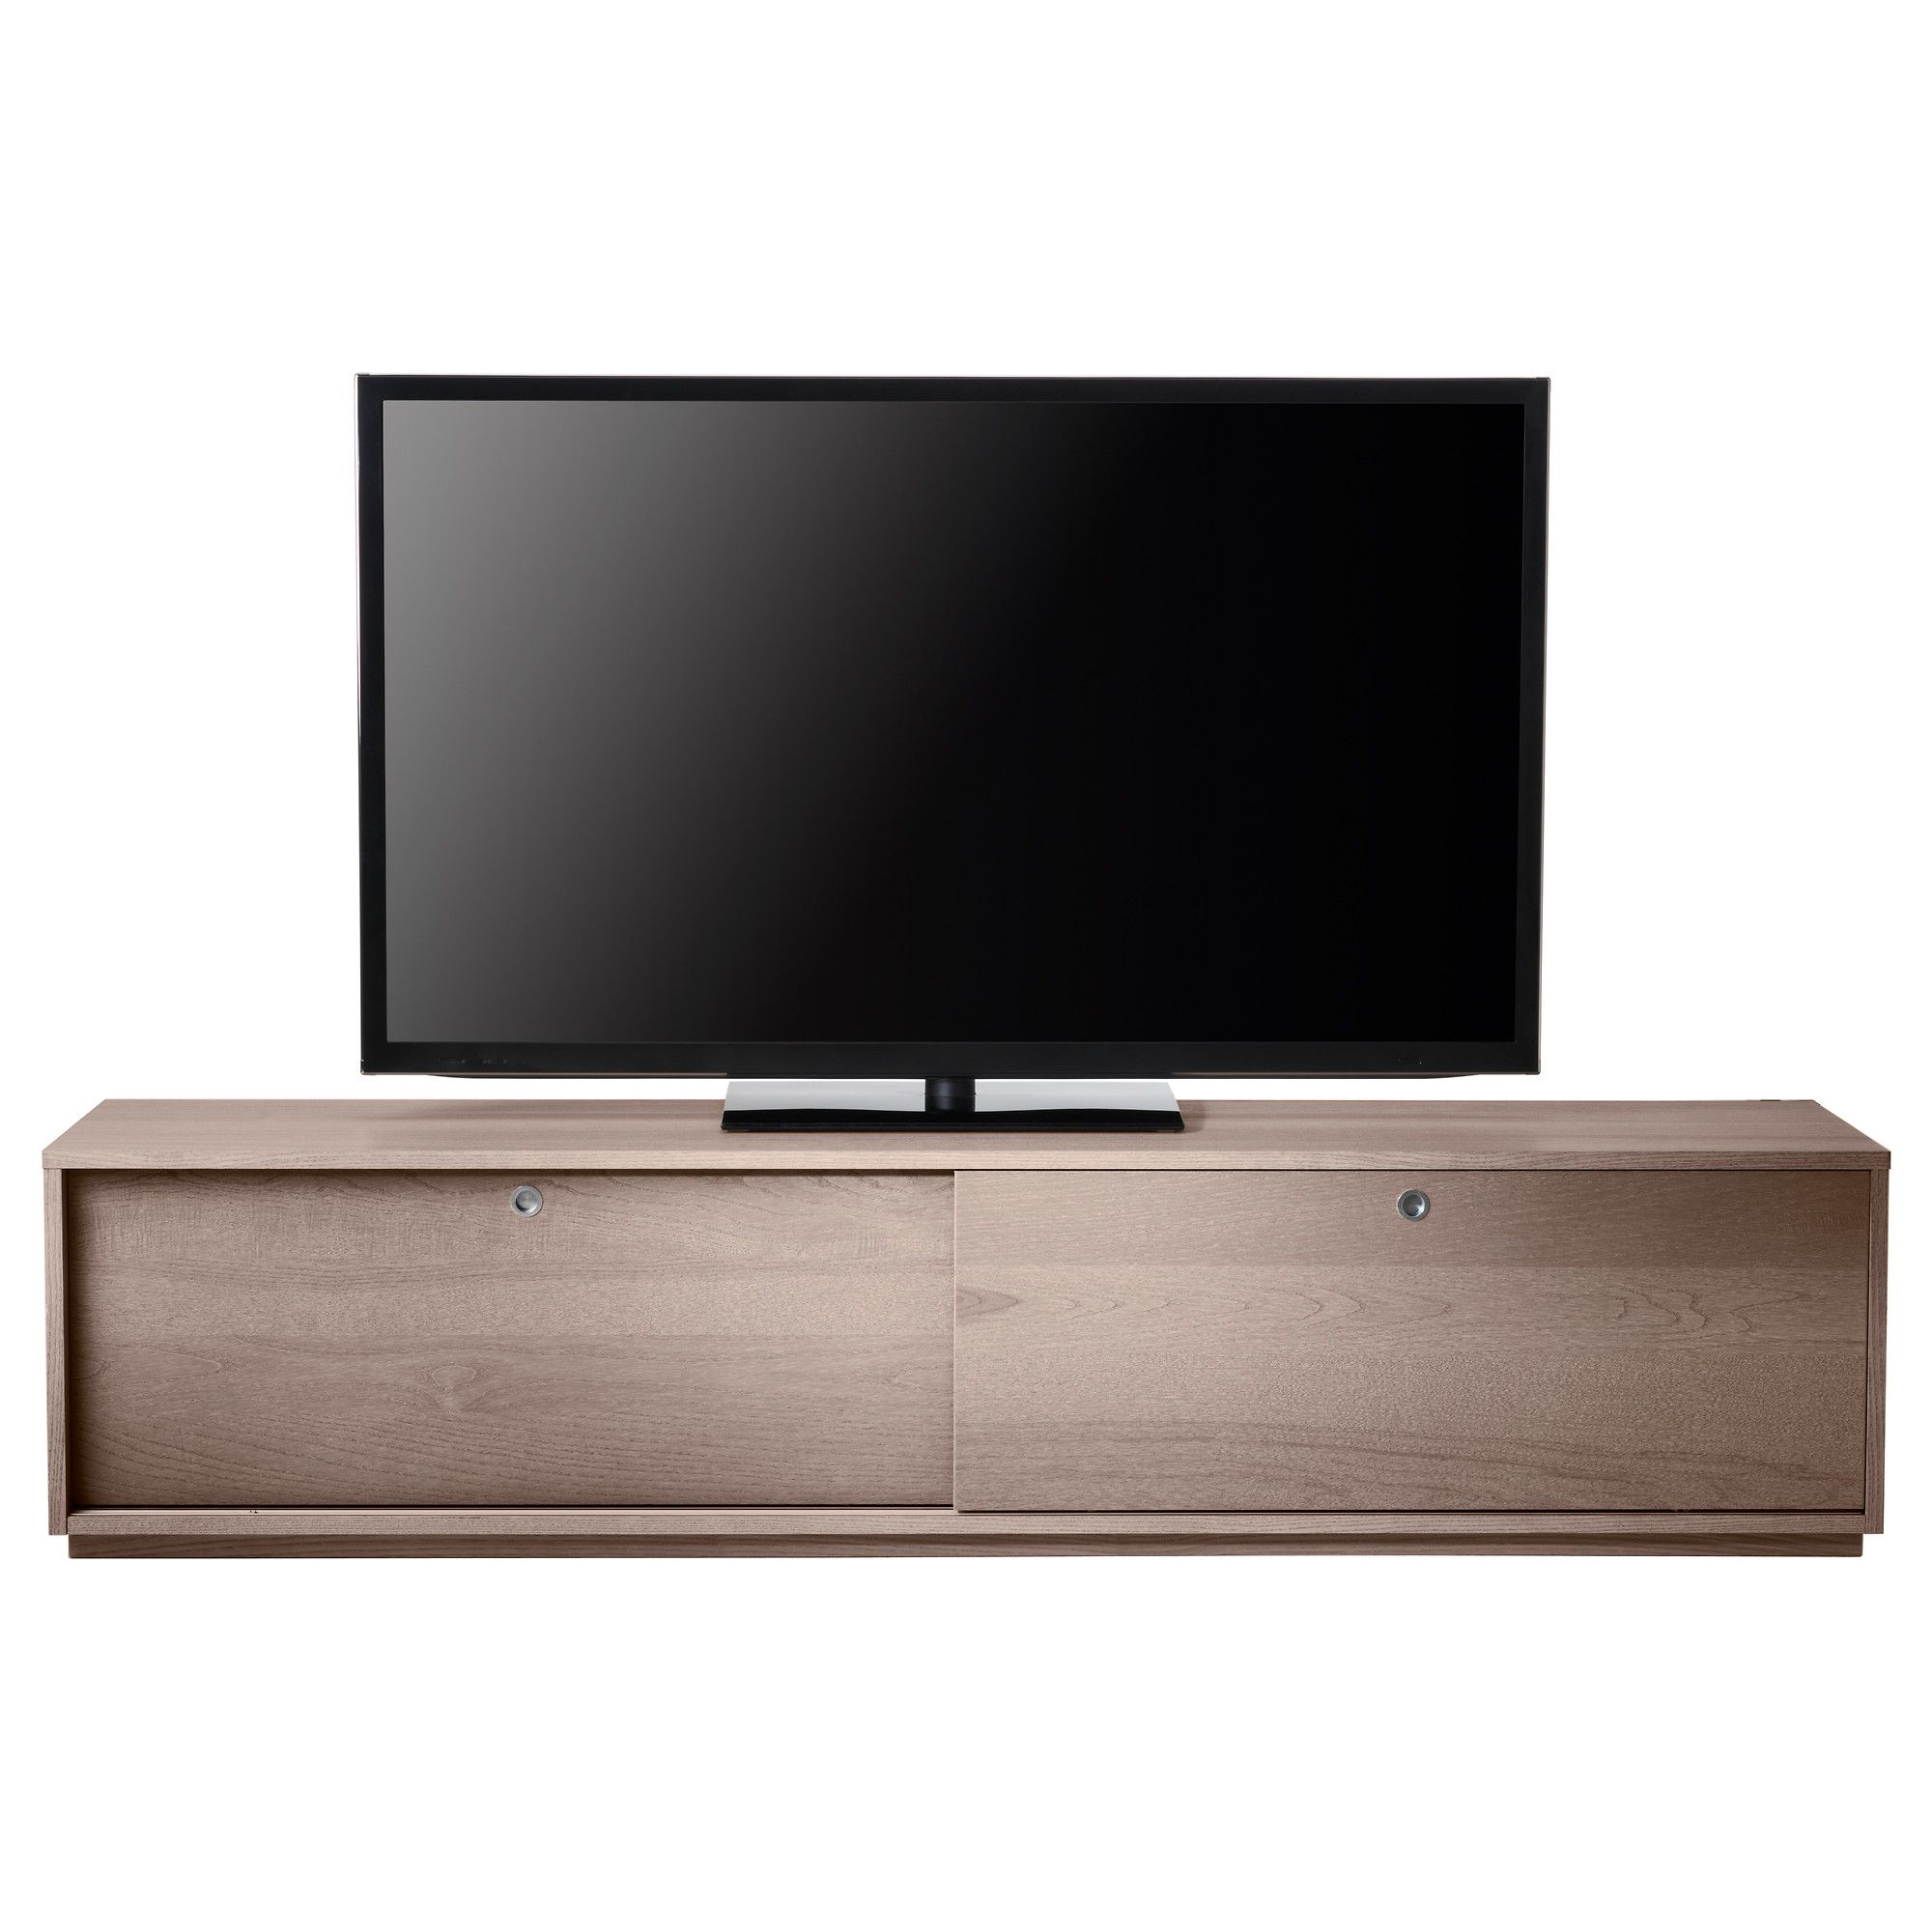 Orrberg Banc Tv Brun Noir Ikea Ideas For Living Room  # Alinea Meuble Tele